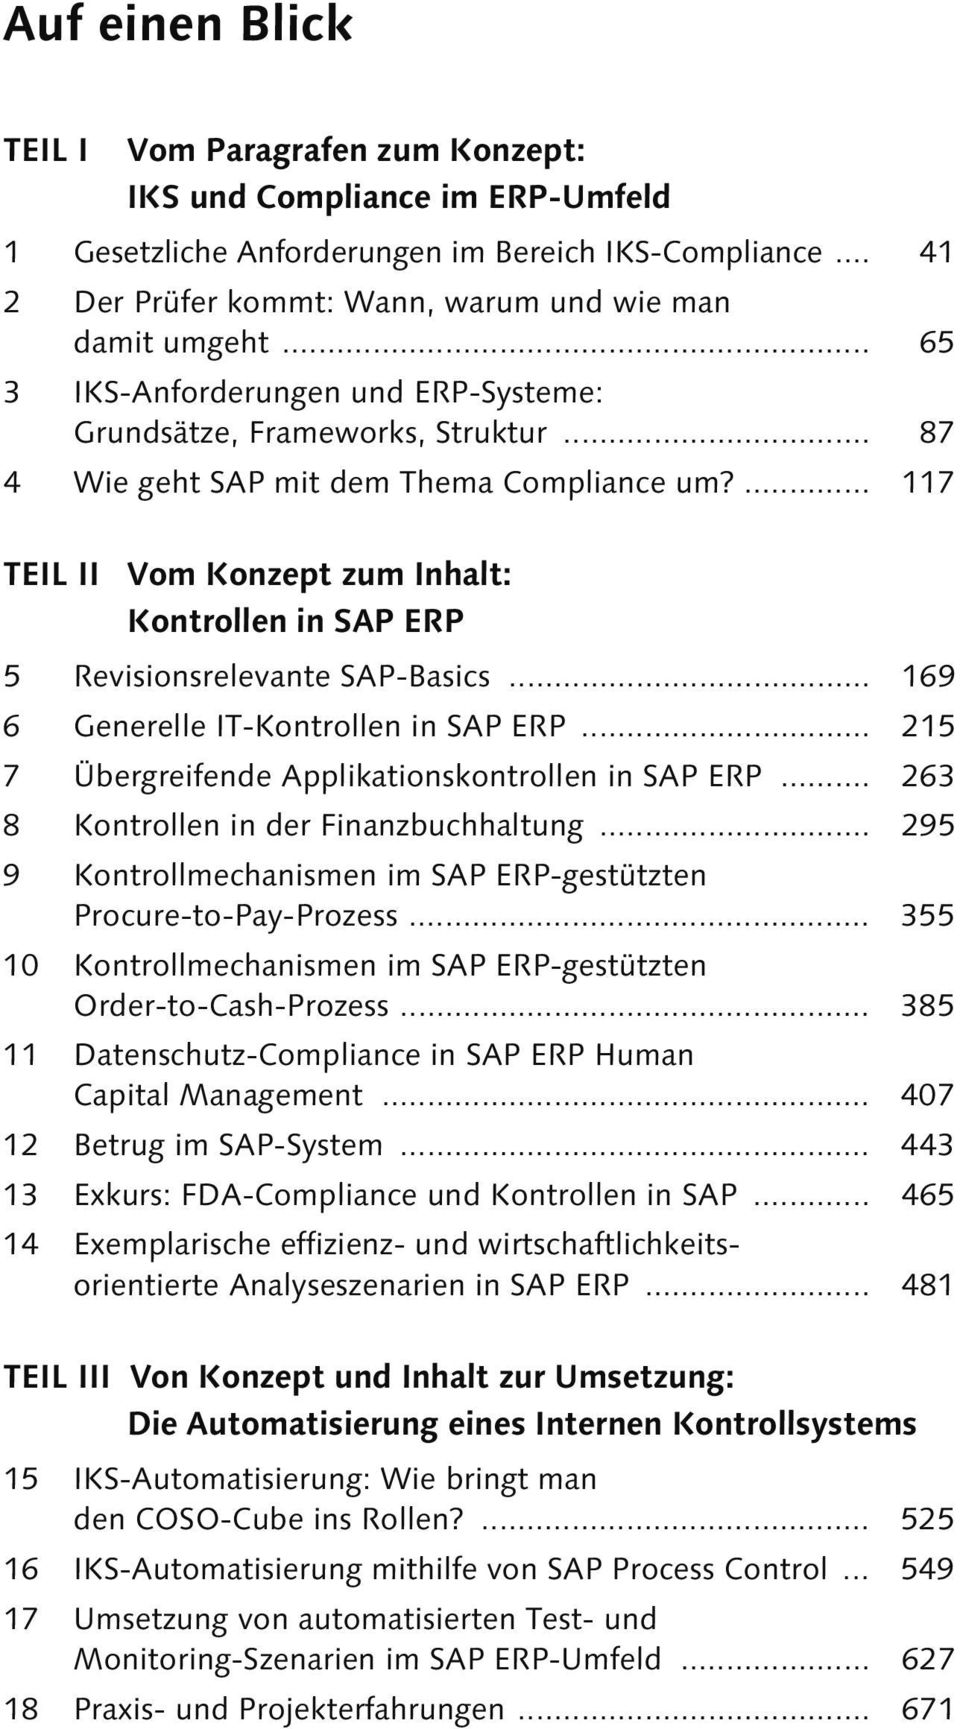 ... 117 TEIL II Vom Konzept zum Inhalt: Kontrollen in SAP ERP 5 Revisionsrelevante SAP-Basics... 169 6 Generelle IT-Kontrollen in SAP ERP... 215 7 Übergreifende Applikationskontrollen in SAP ERP.